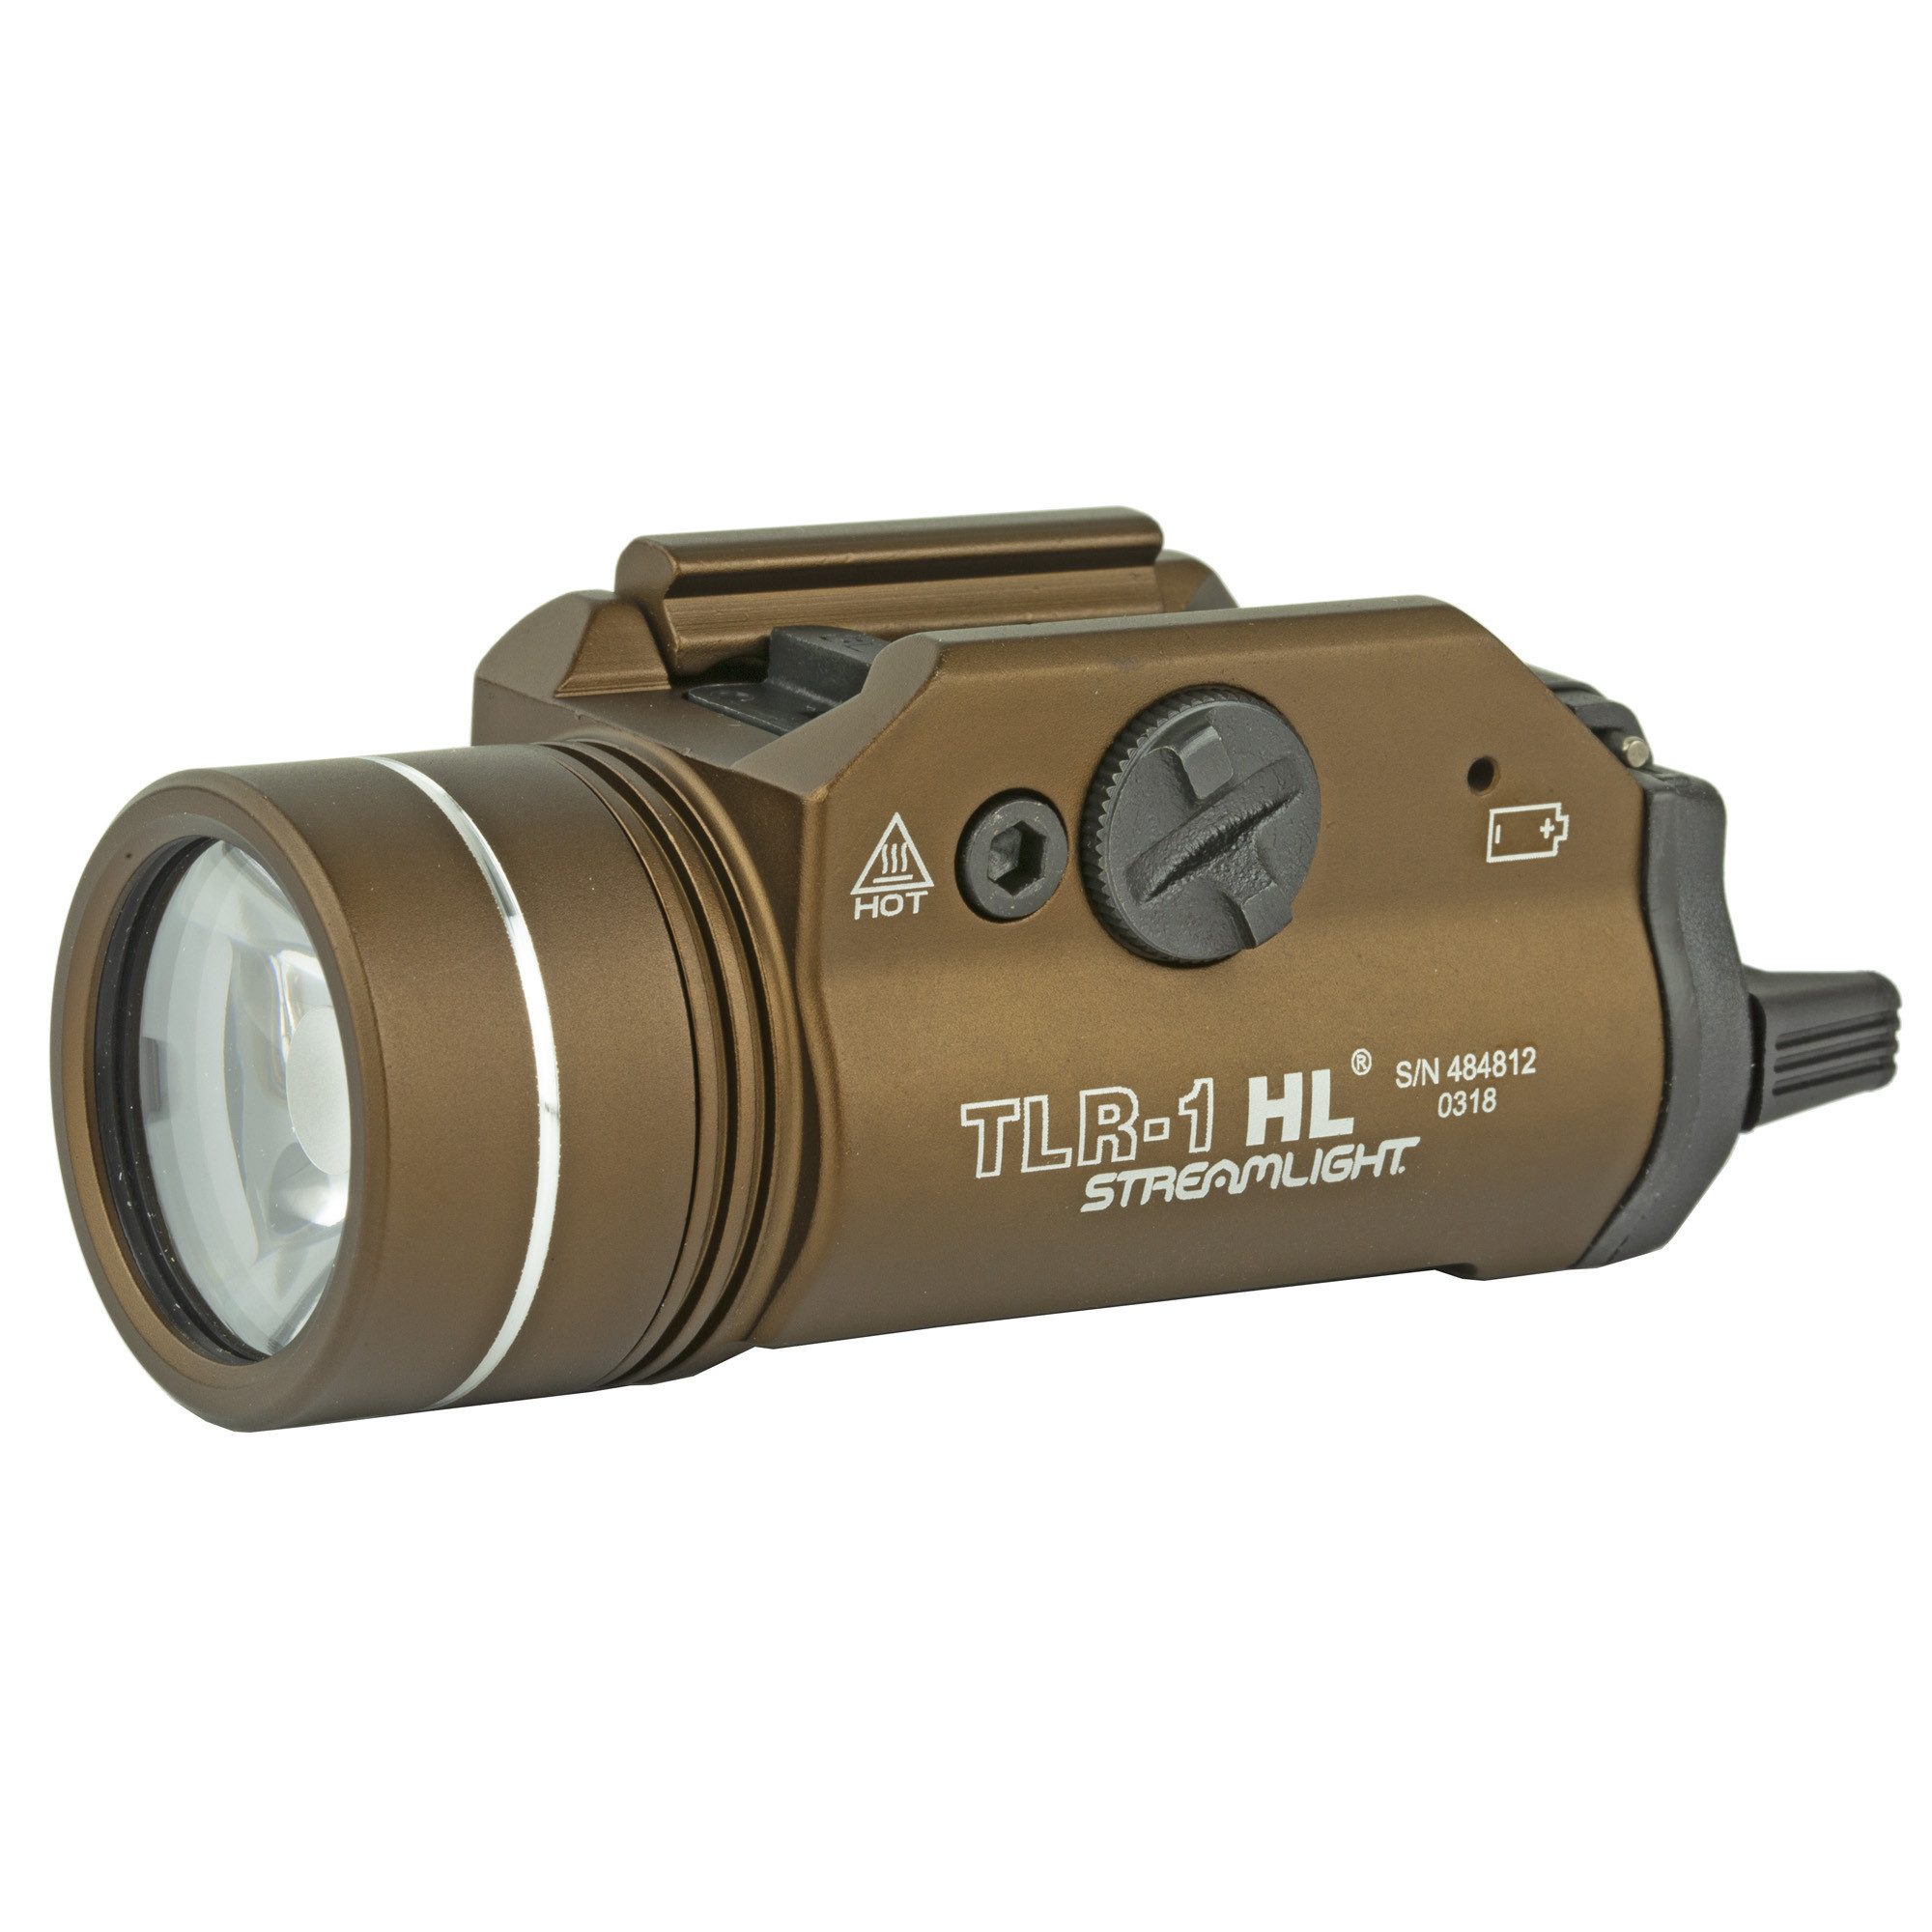 STRMLGHT TLR-1-HL FDE BROWN